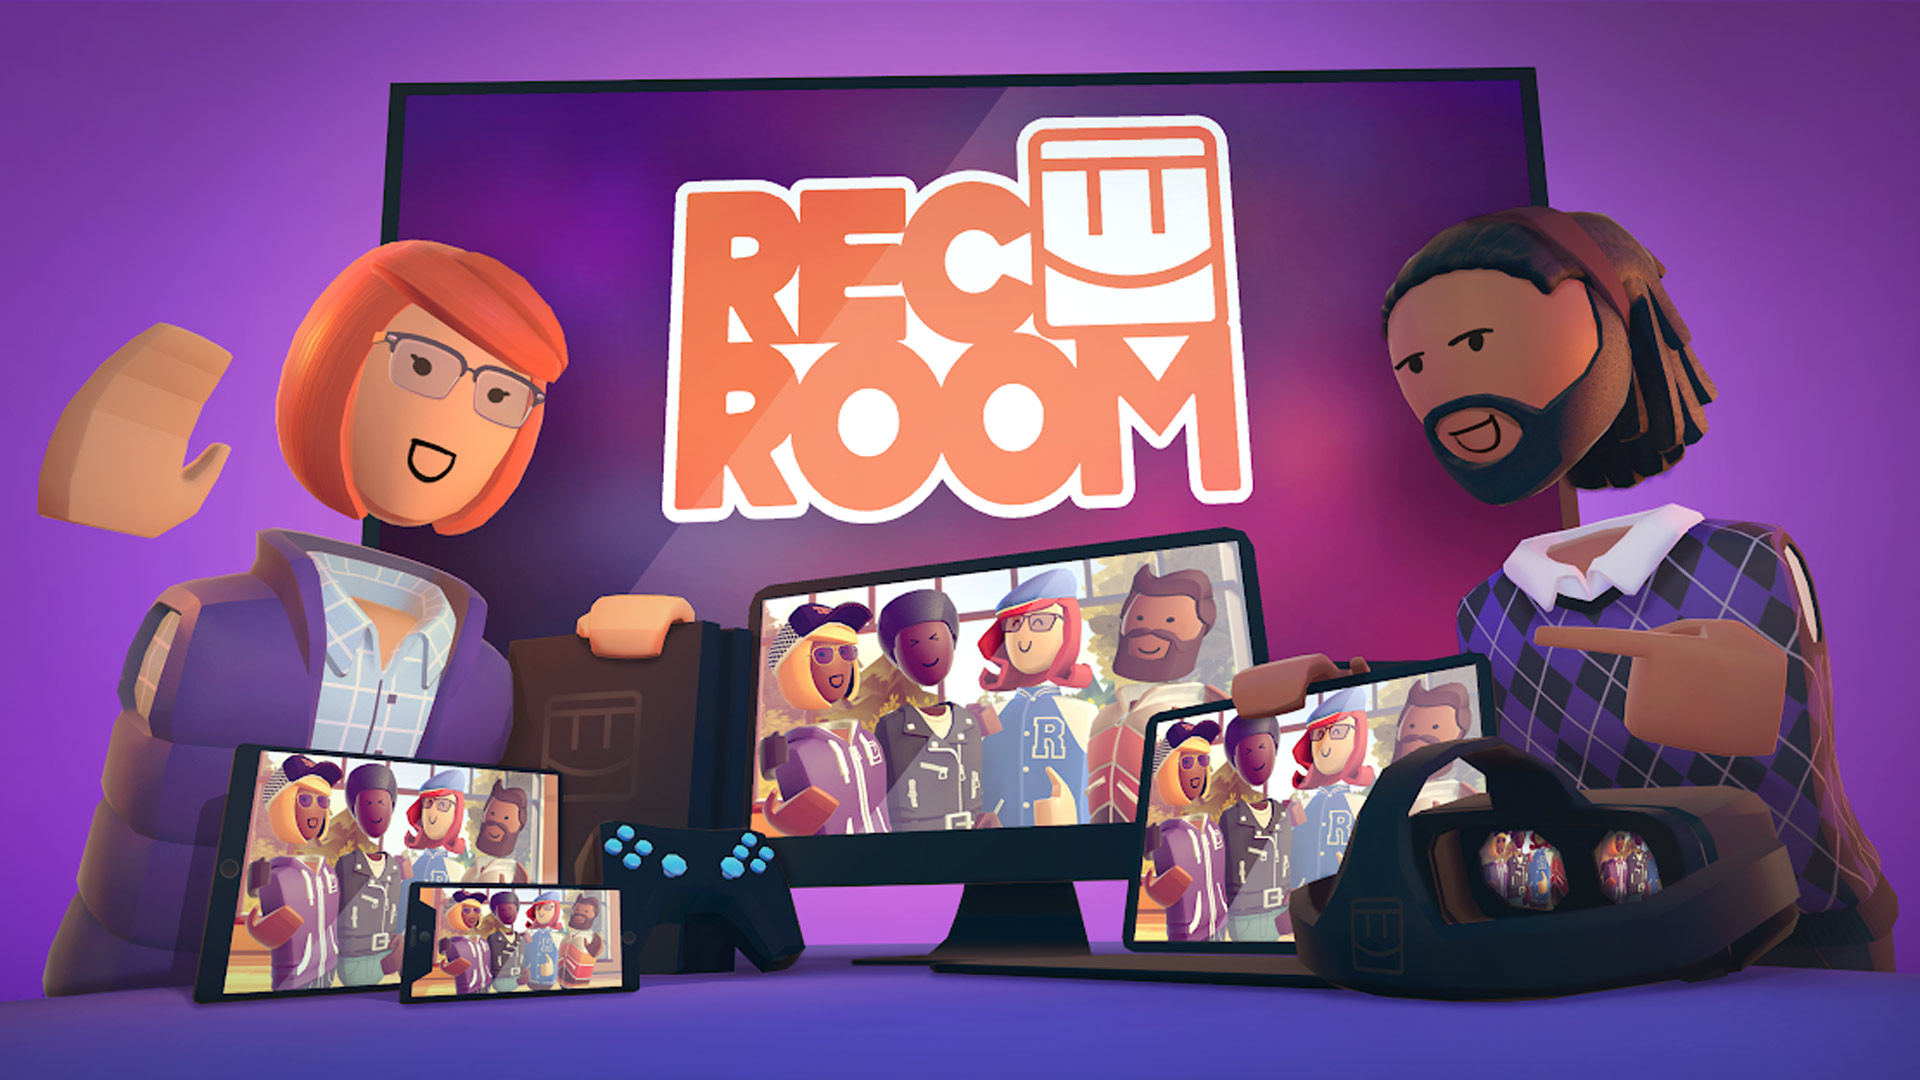 'Rec Room' is Coming Soon to iPhone & iPad